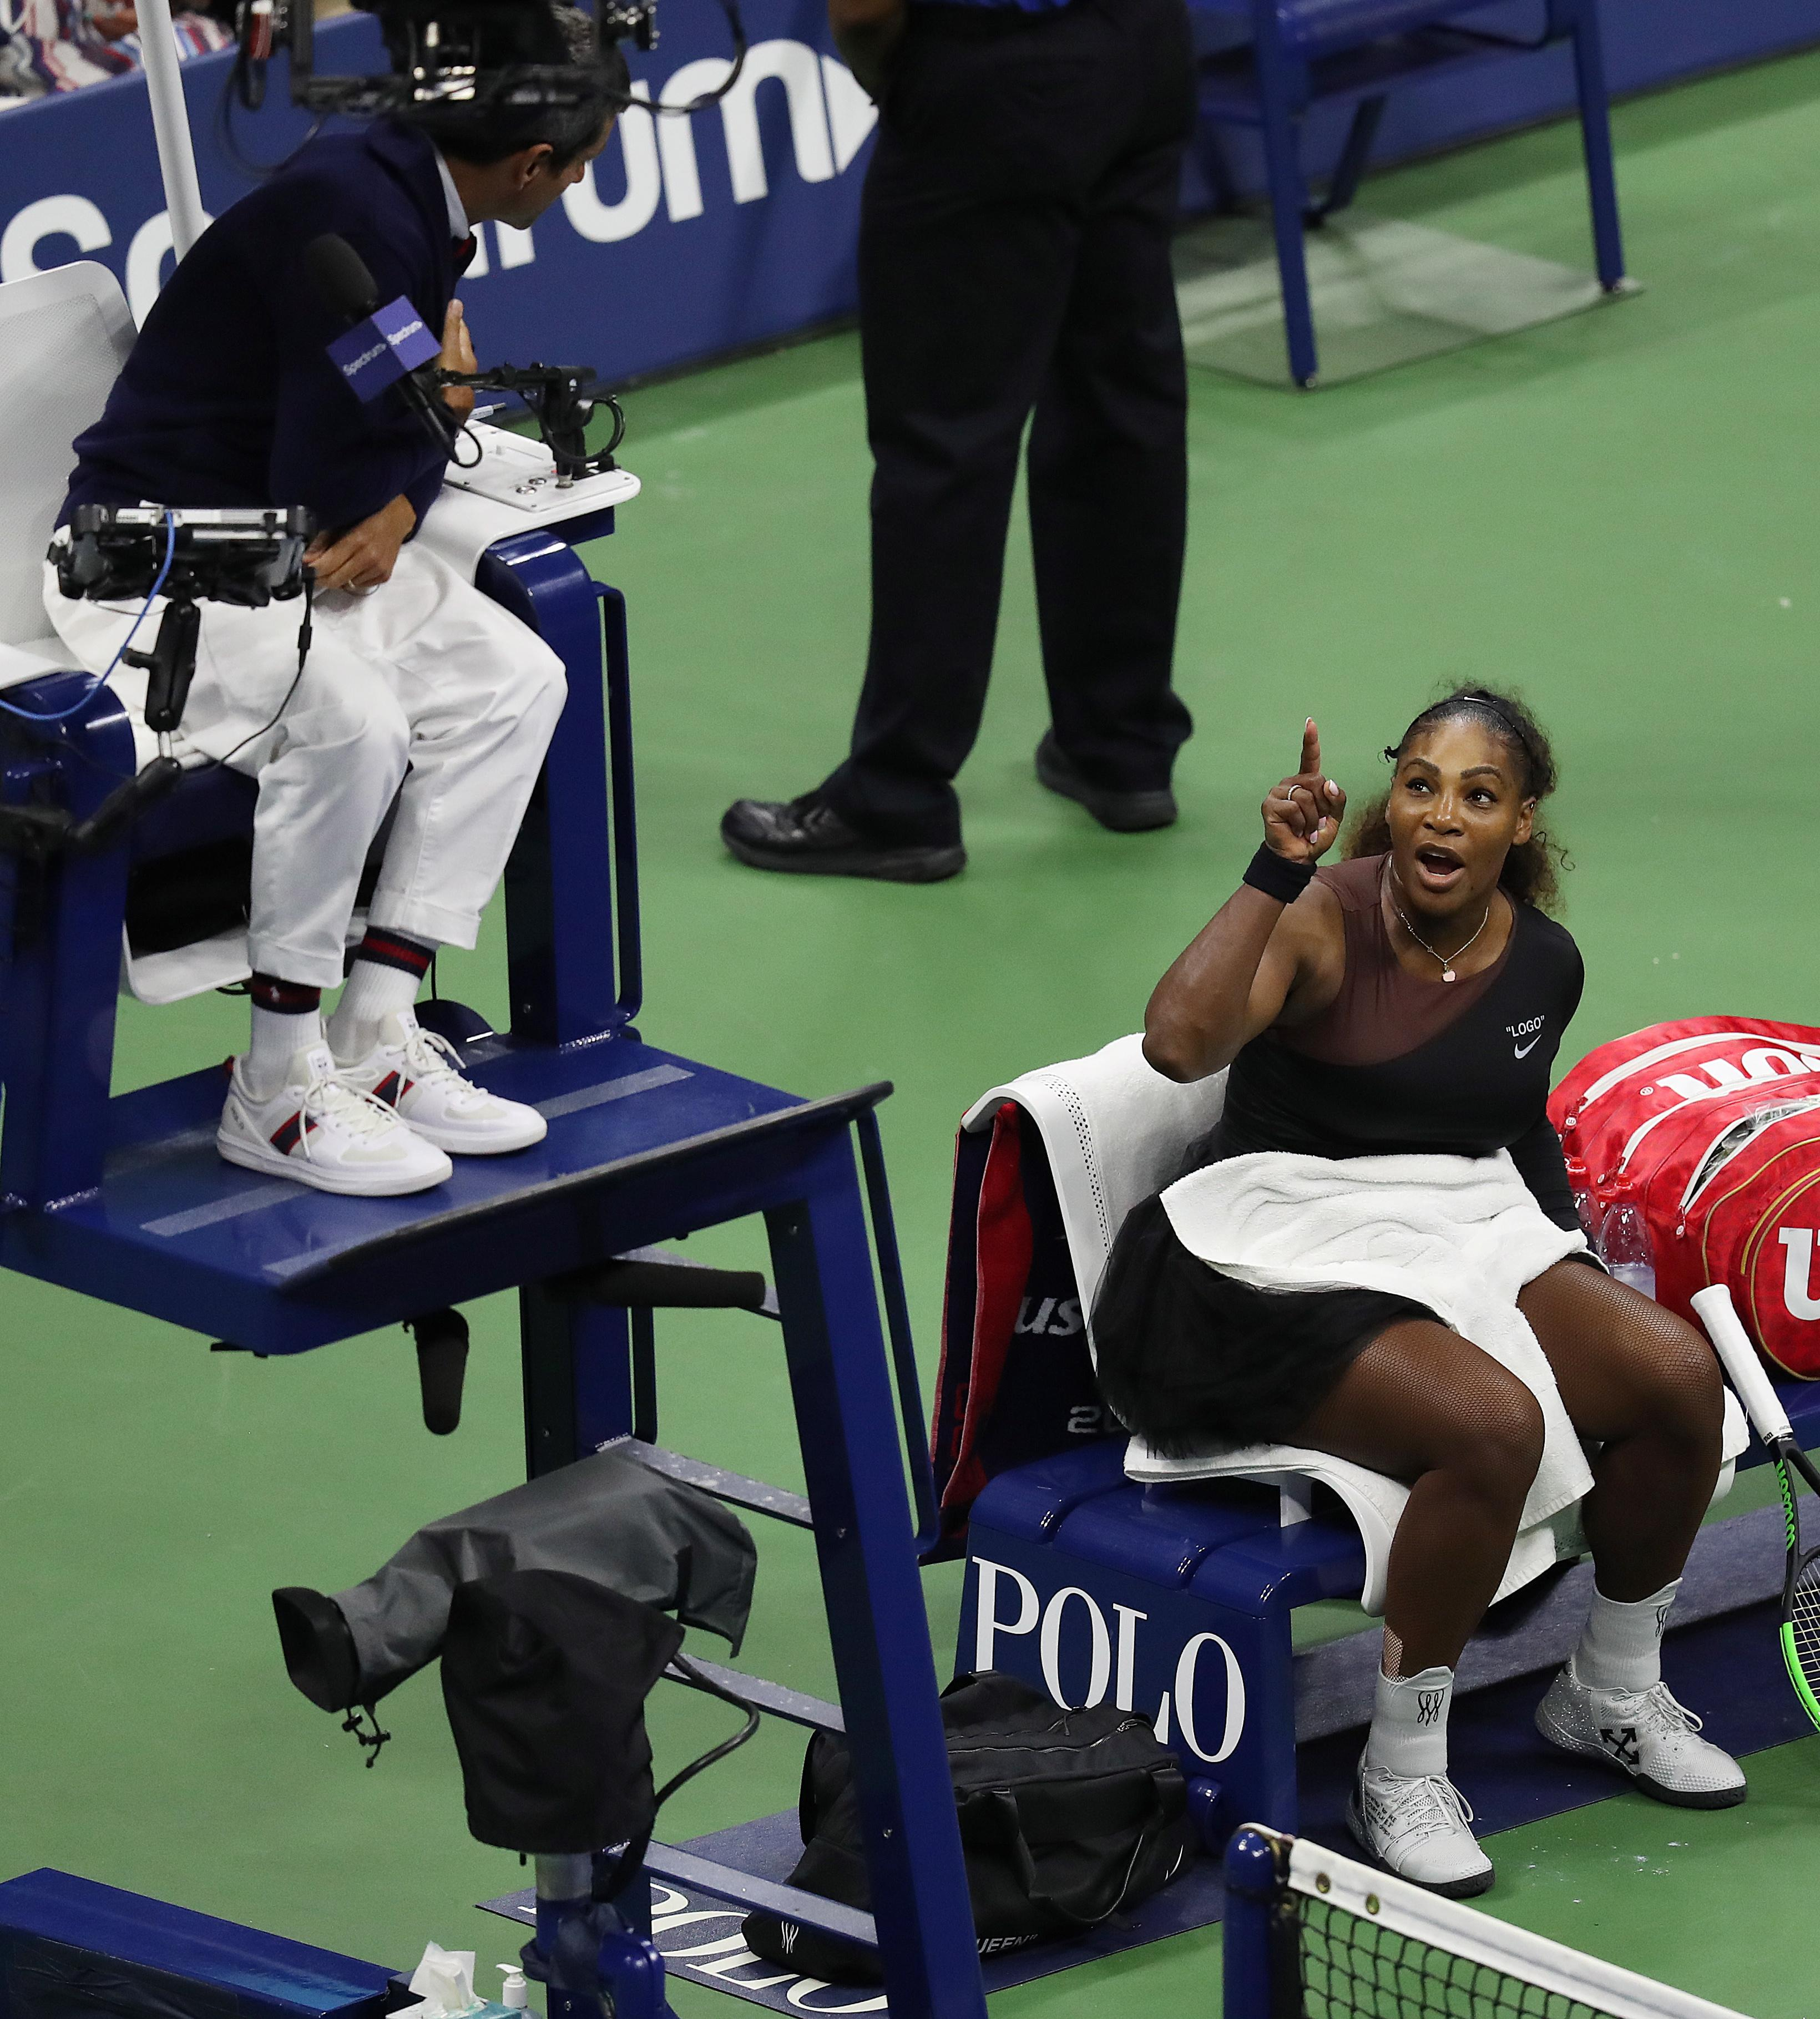 Williams rages at the chair umpire during her US Open final defeat